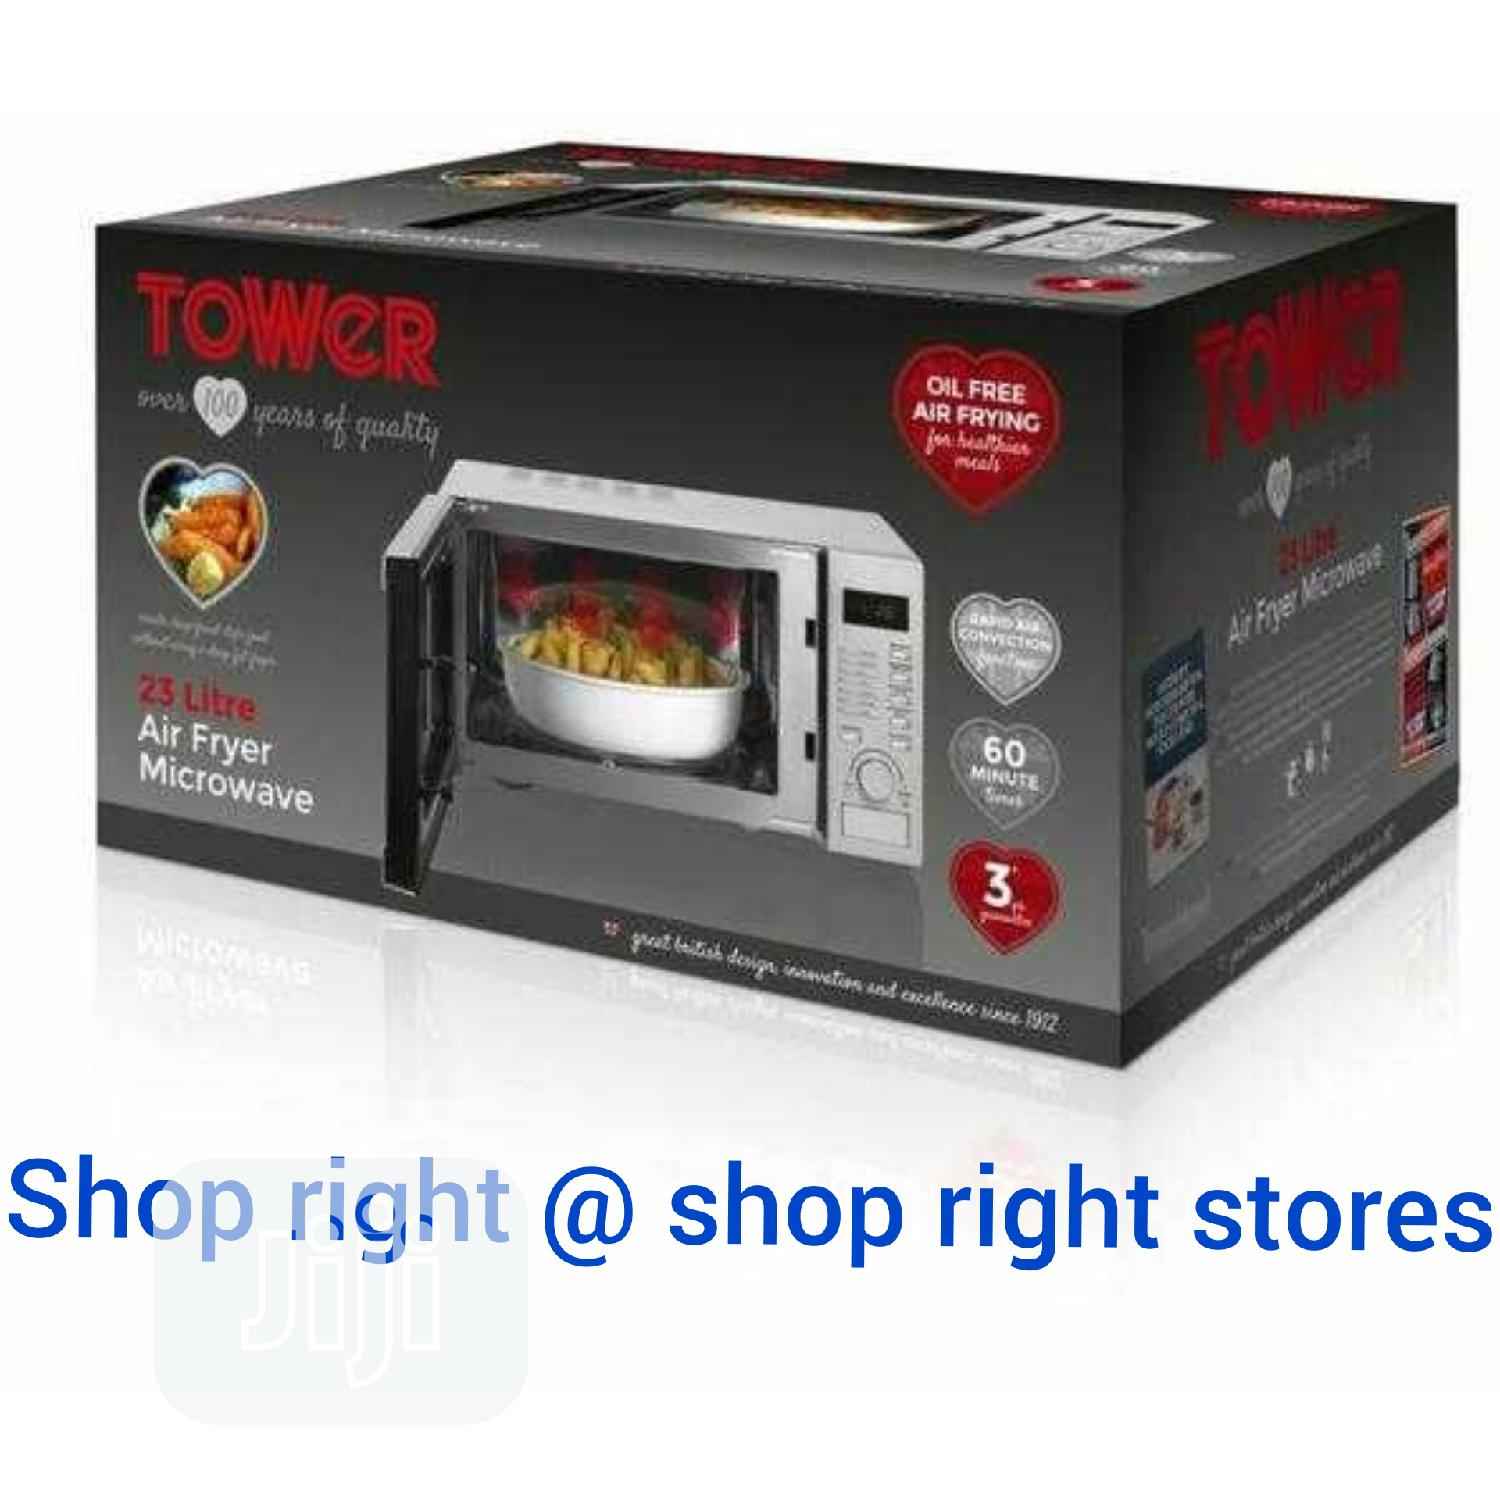 tower air fryer conventional grill microwave oven